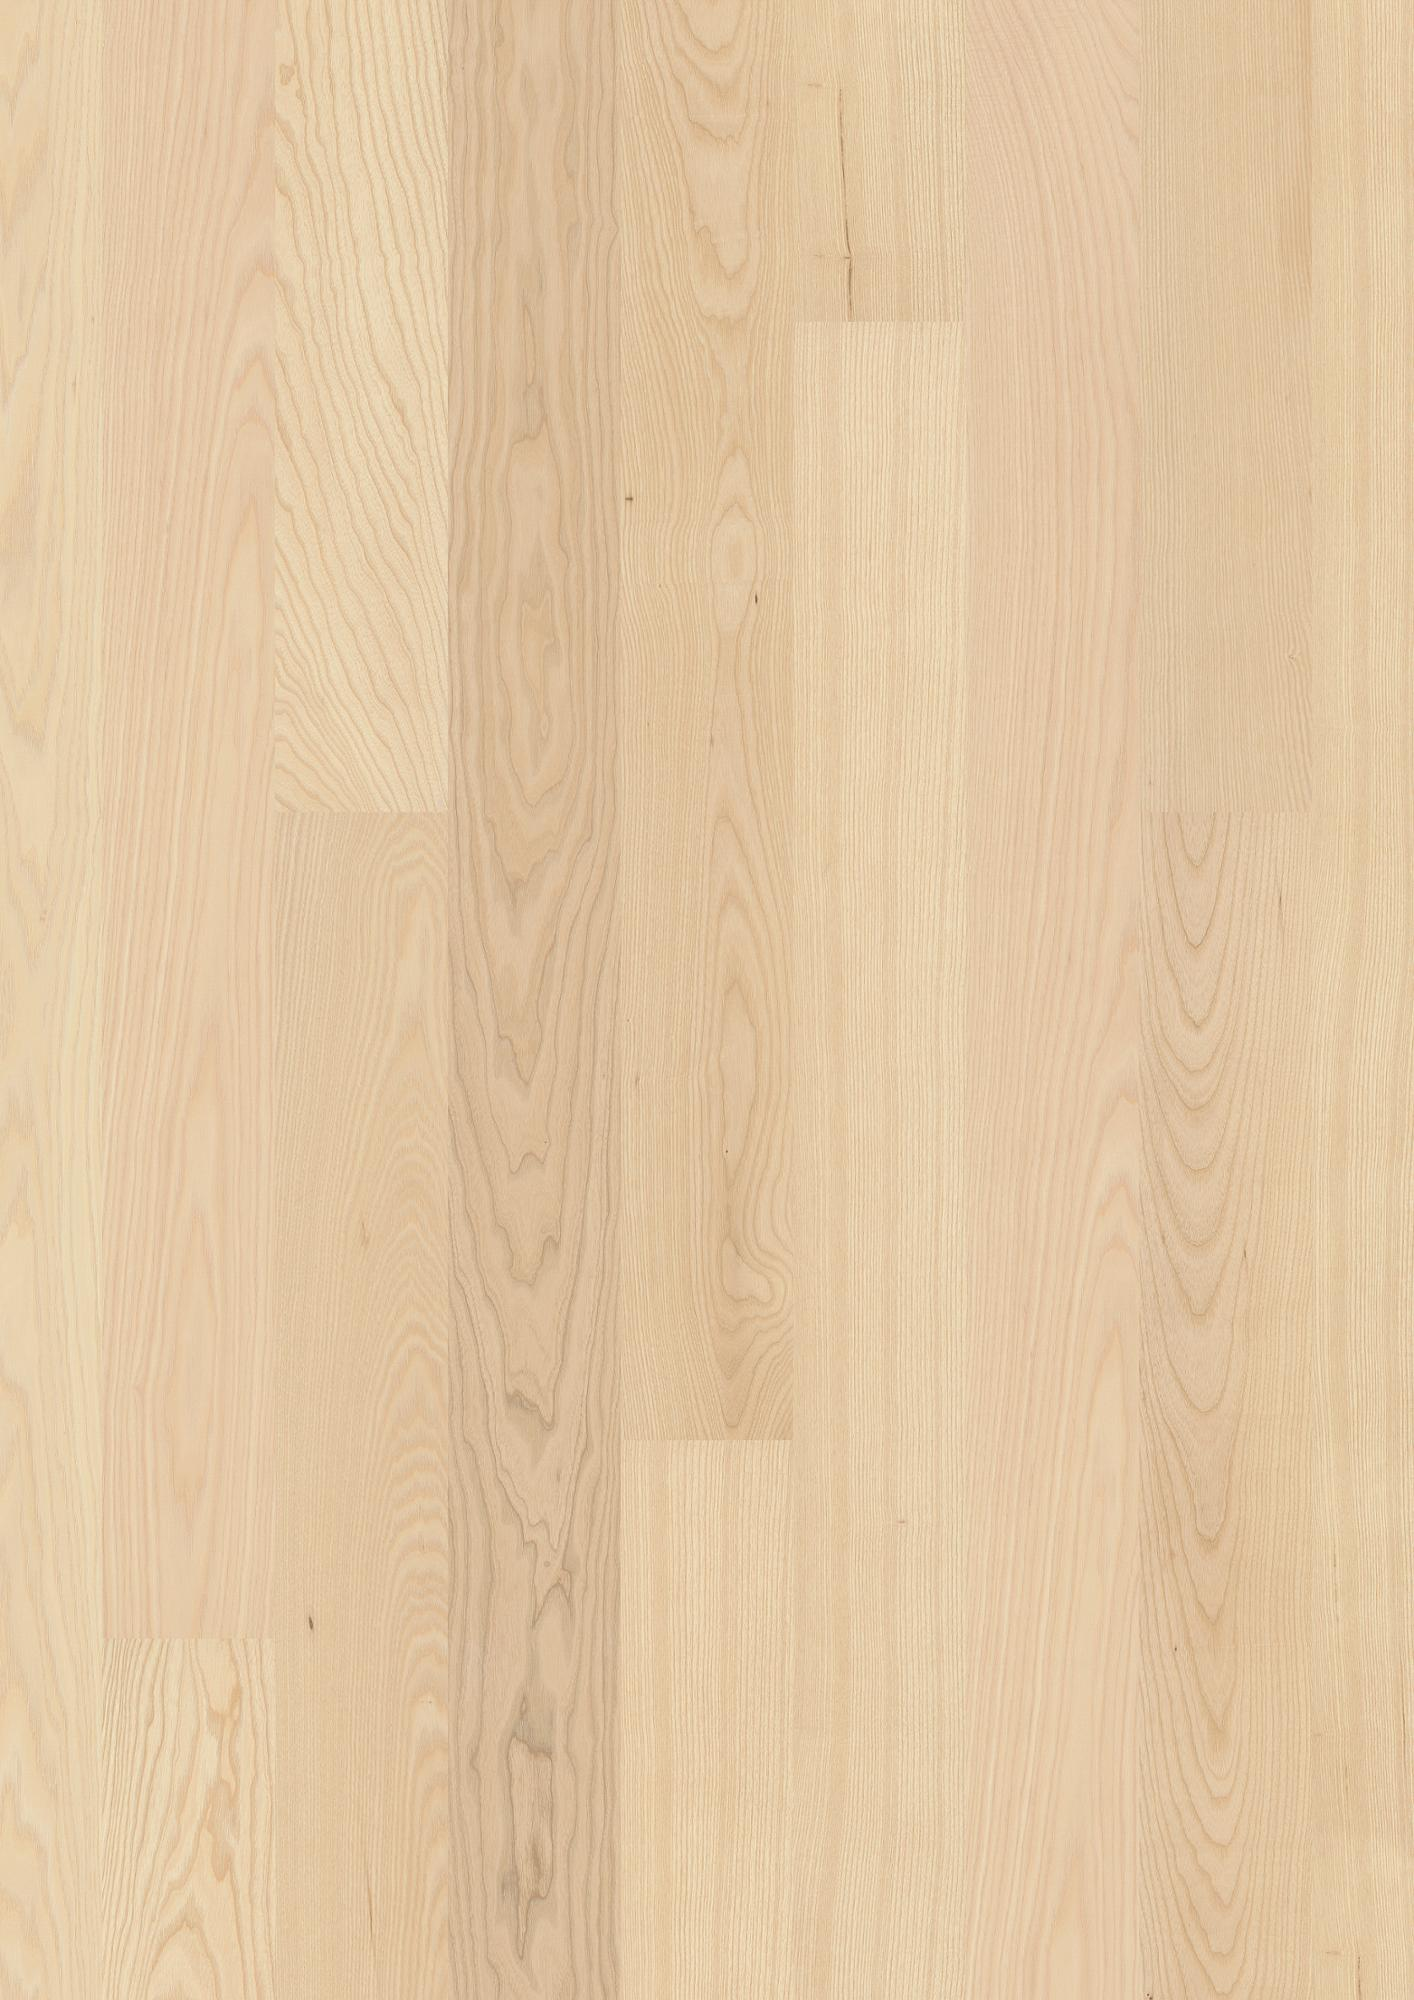 Ash Andante, Live Pure lacquer, Brushed, Beveled 2V, Plank 138, 14x138x2200mm